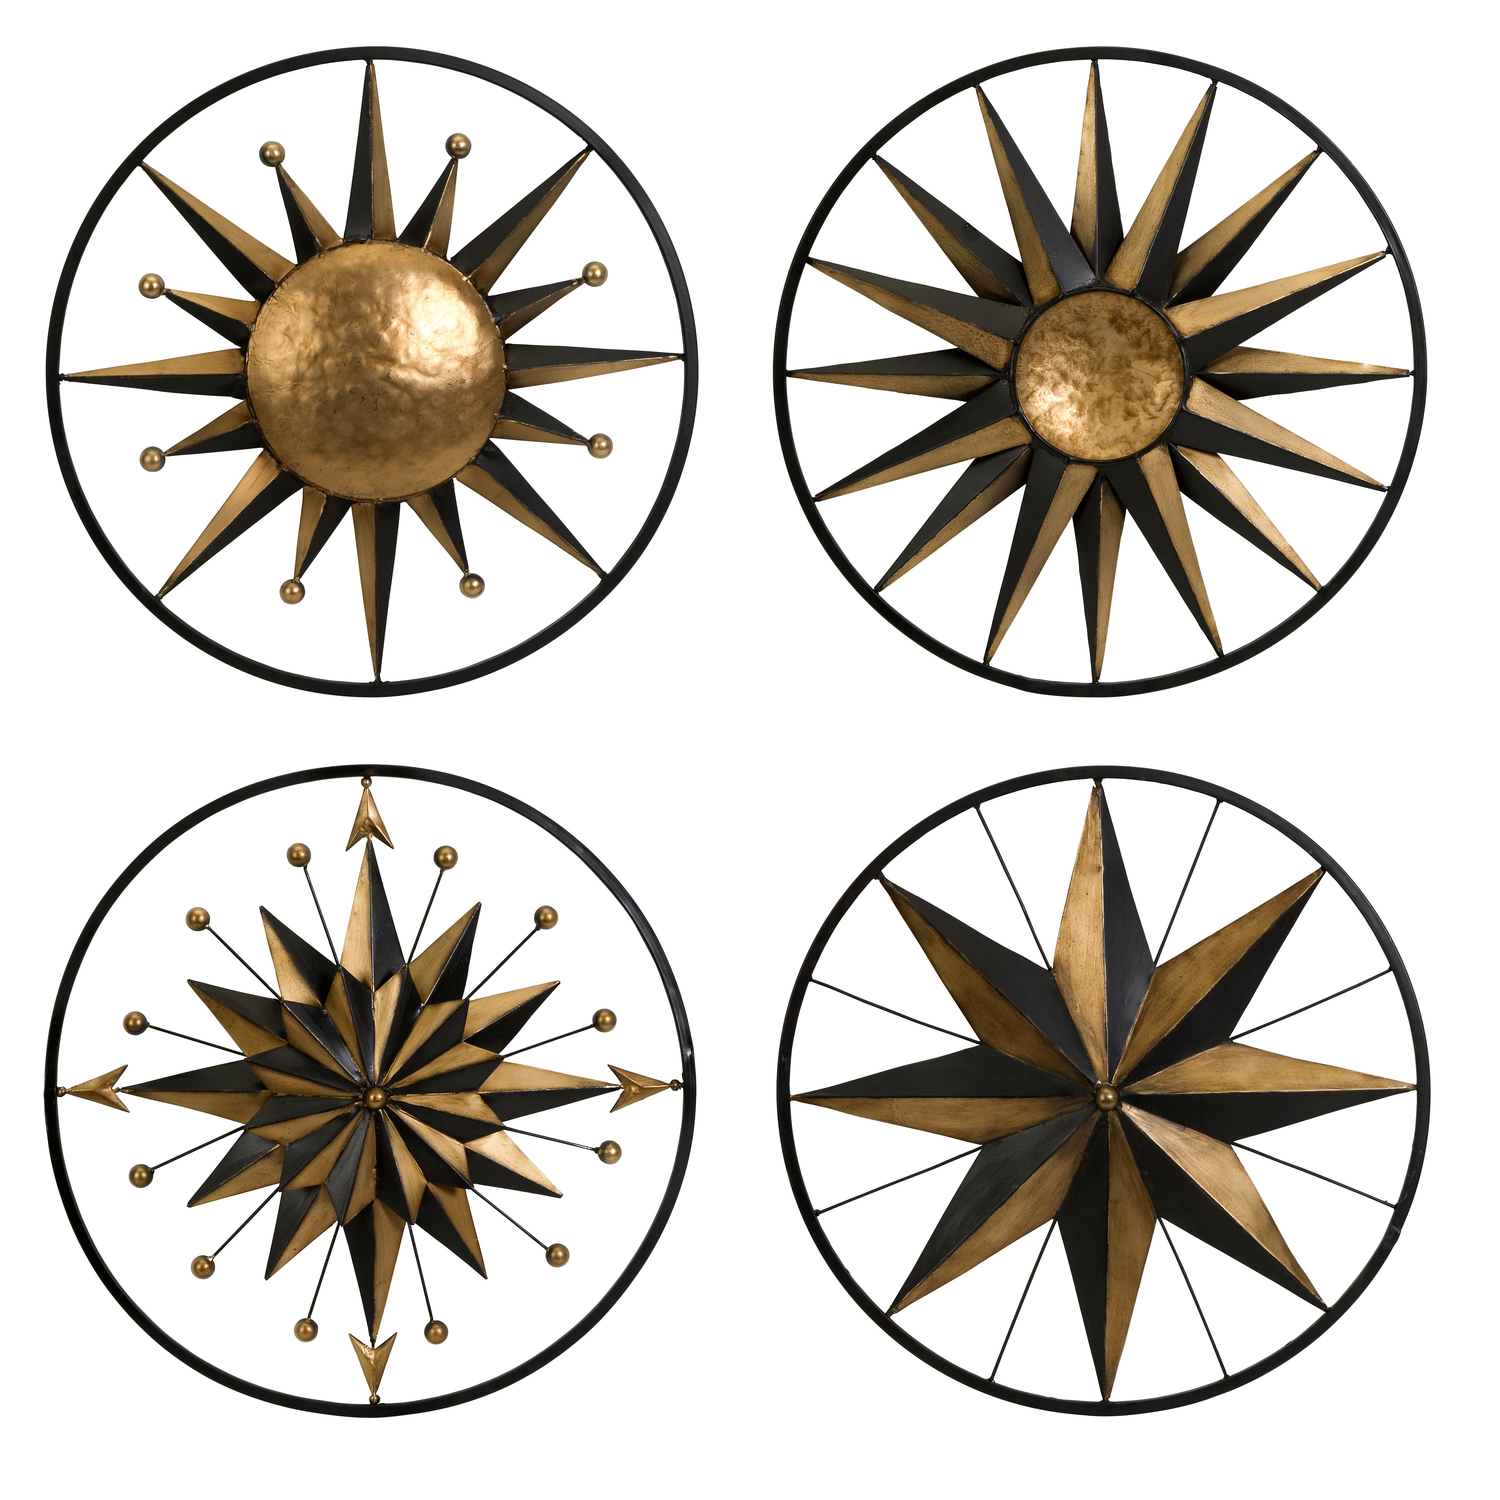 10797116455733p Jpg Imak Set Of 4 Orion Wall Decor Accents By Oj Commerce 87041